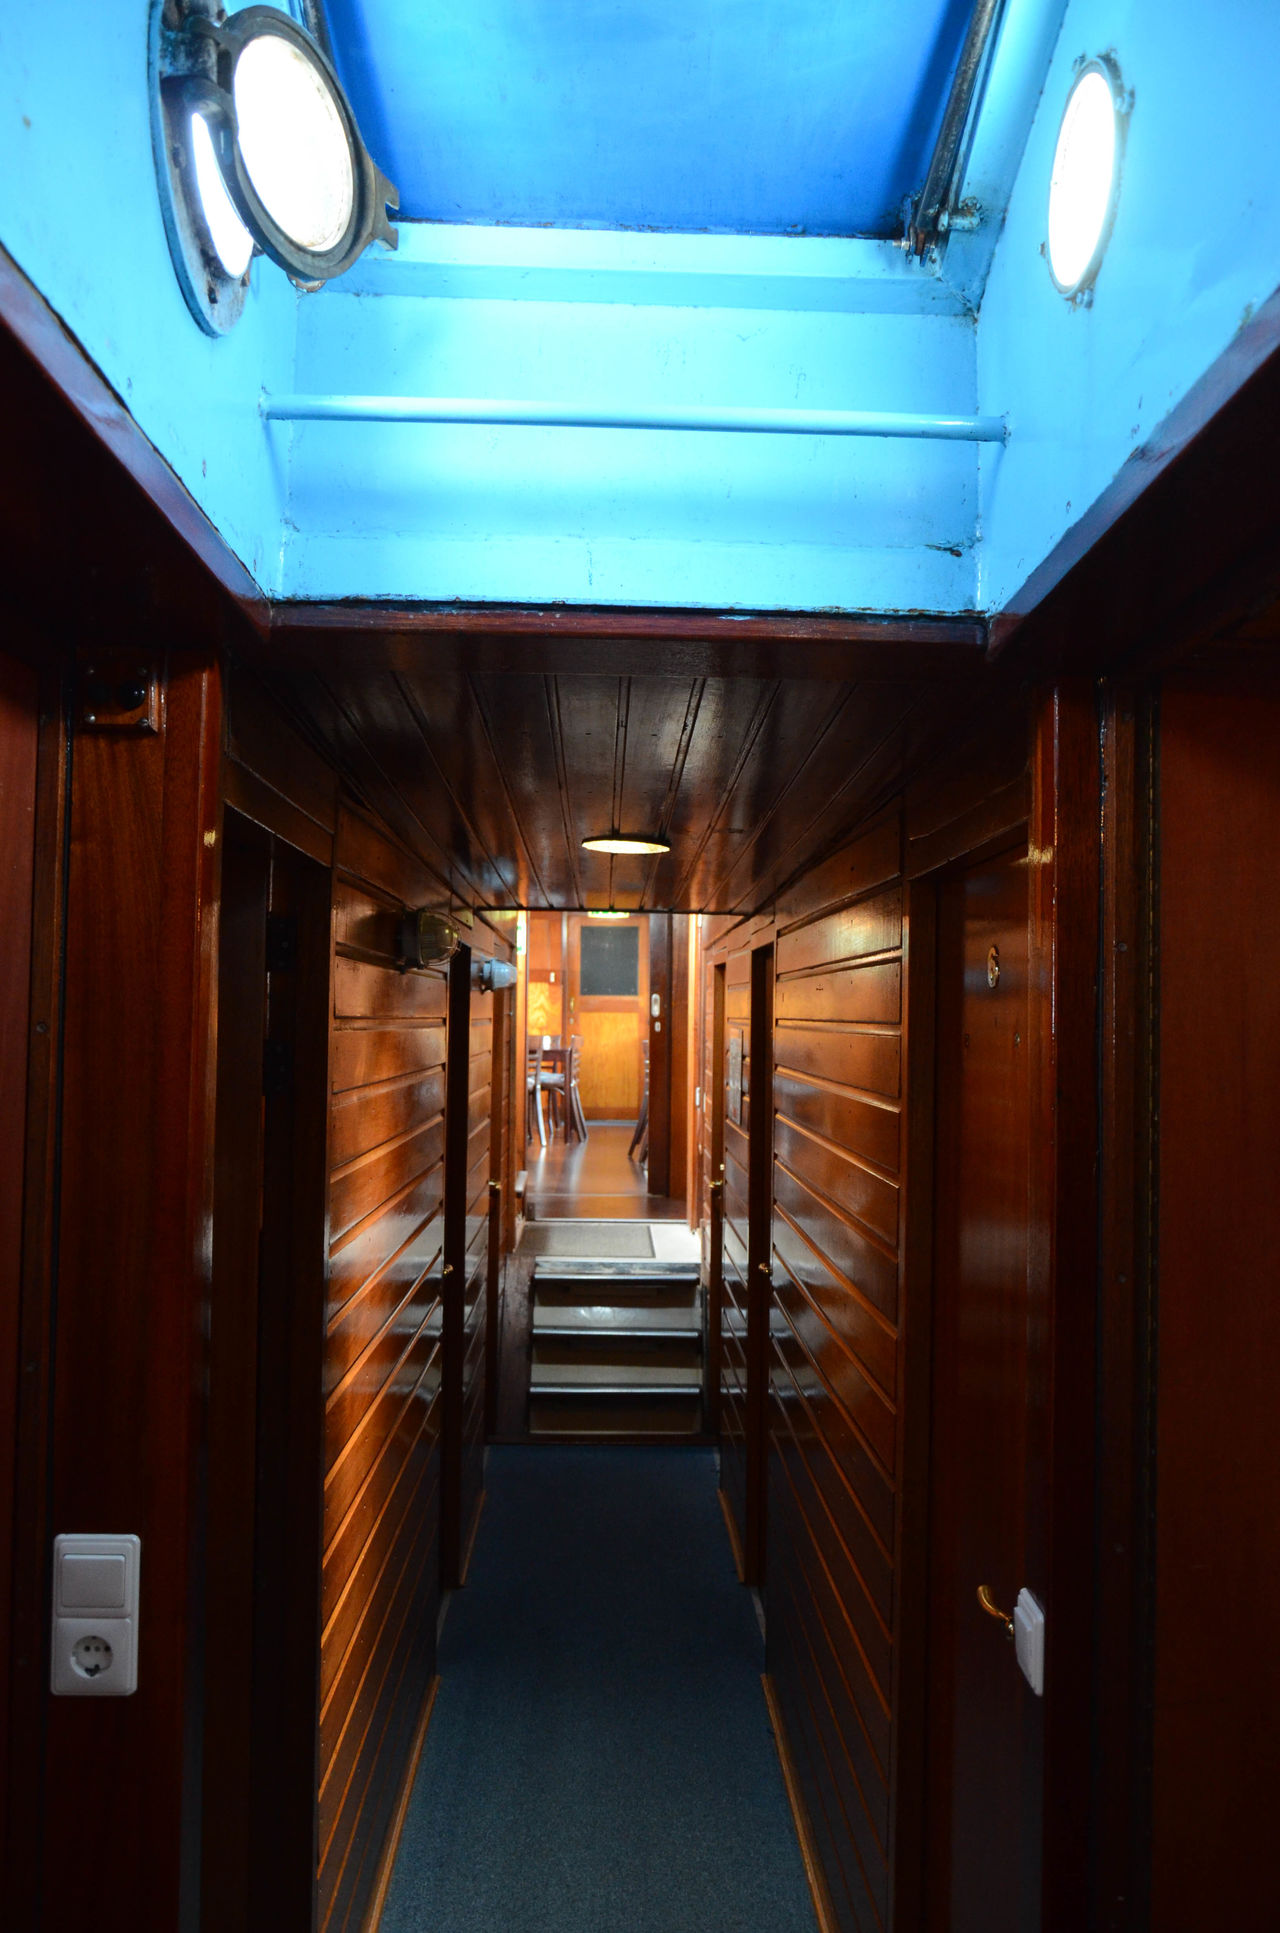 Stayed at this boat hotel. Boat Corridor Hotel Interior Narrow Narrowboat Narrowpath Window Wood Circular Window